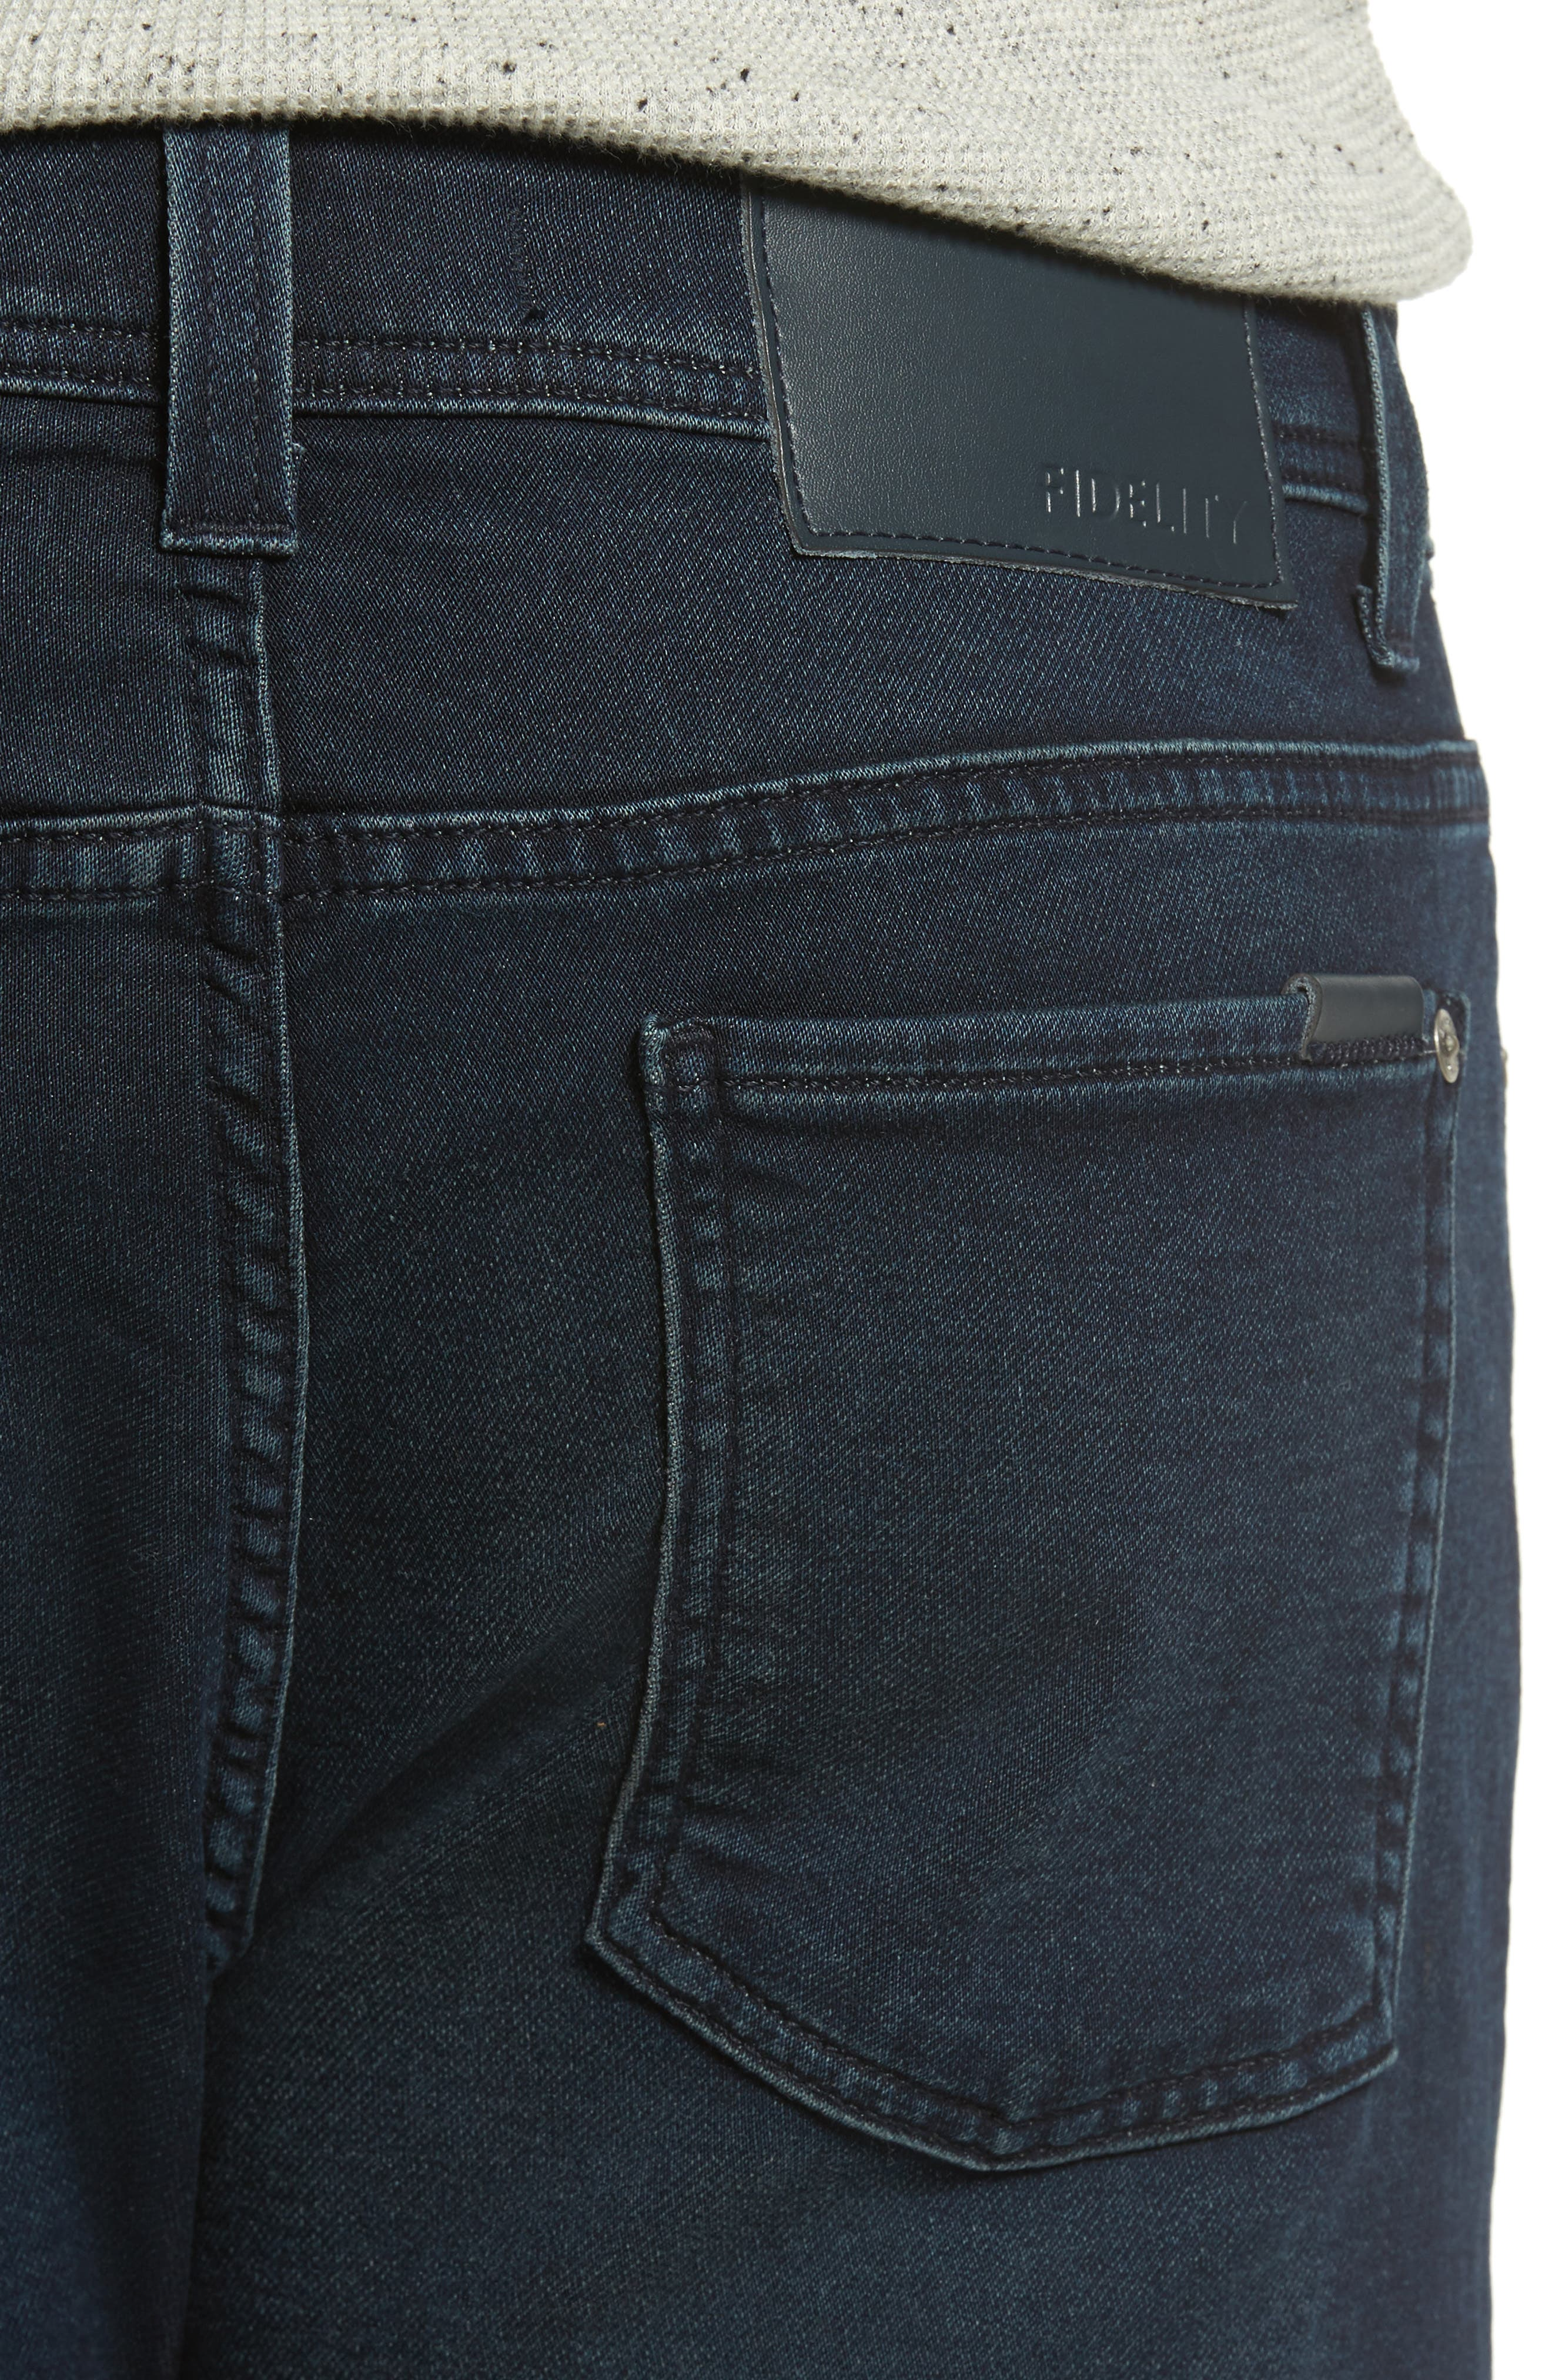 Jimmy Slim Straight Leg Jeans,                             Alternate thumbnail 4, color,                             Oxy Midnight